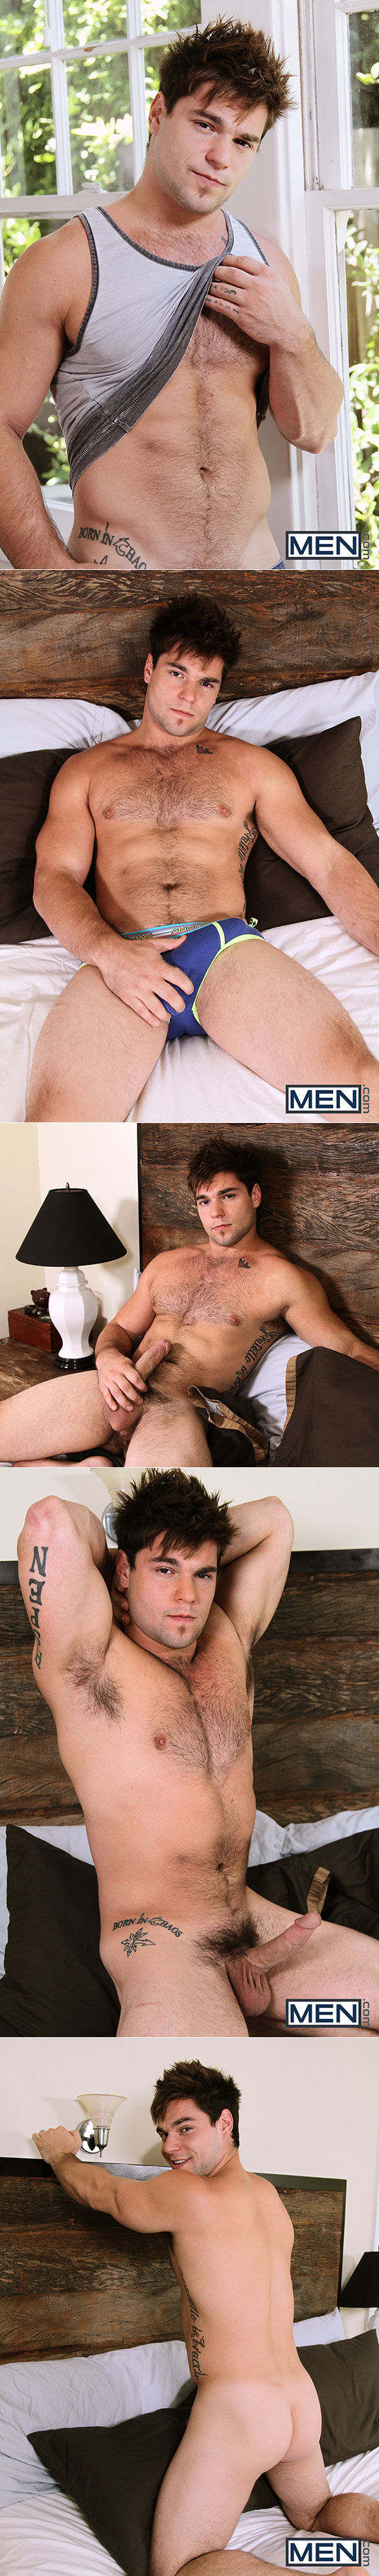 "Men.com: Aspen bottoms for Dennis West in ""The In-Laws, Part 2"""